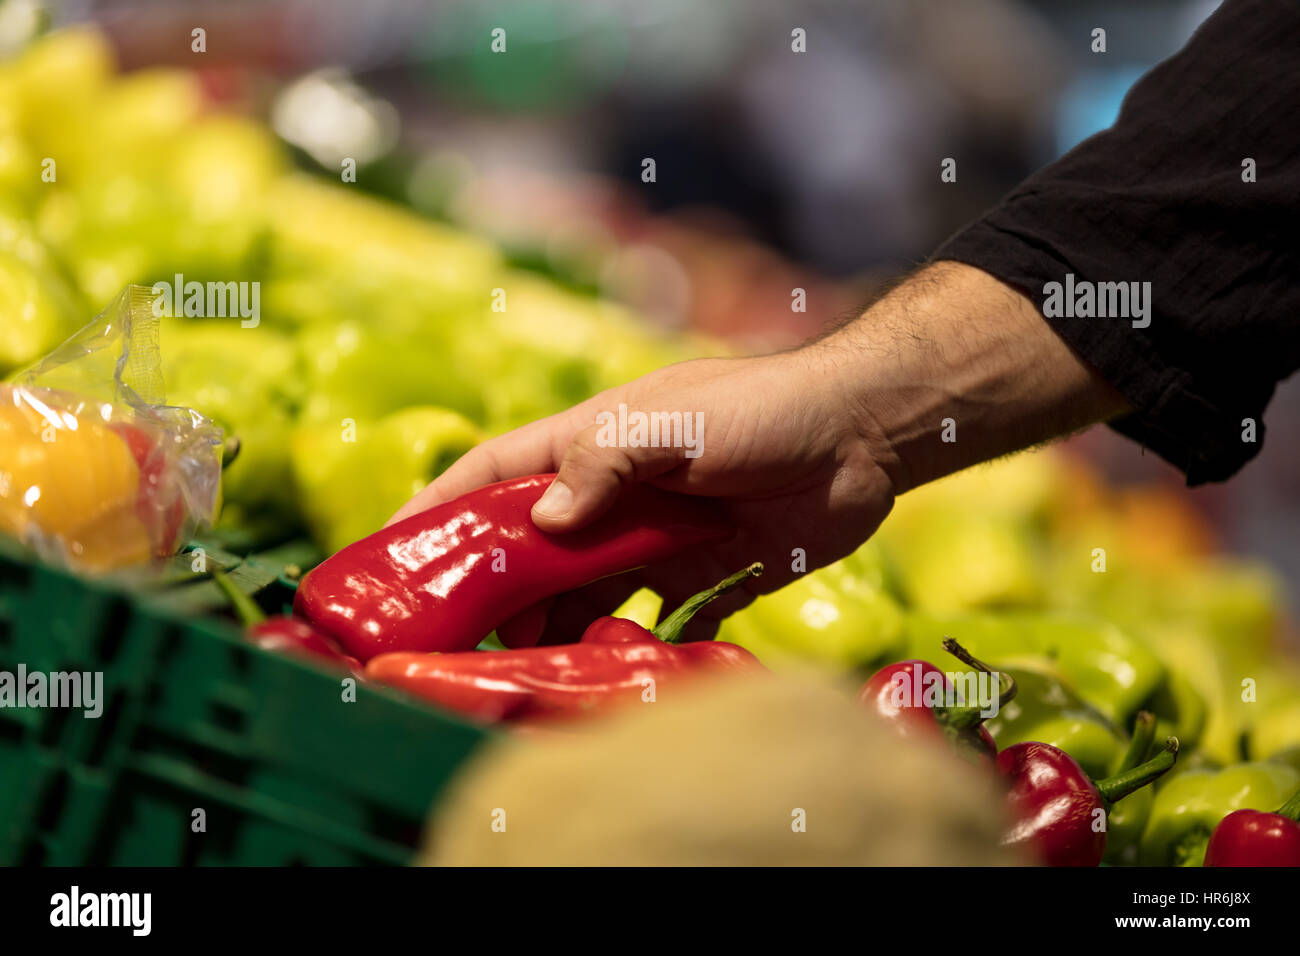 sale, shopping, food, consumerism and people concept - woman with basket buying bell peppers or paprika at grocery - Stock Image